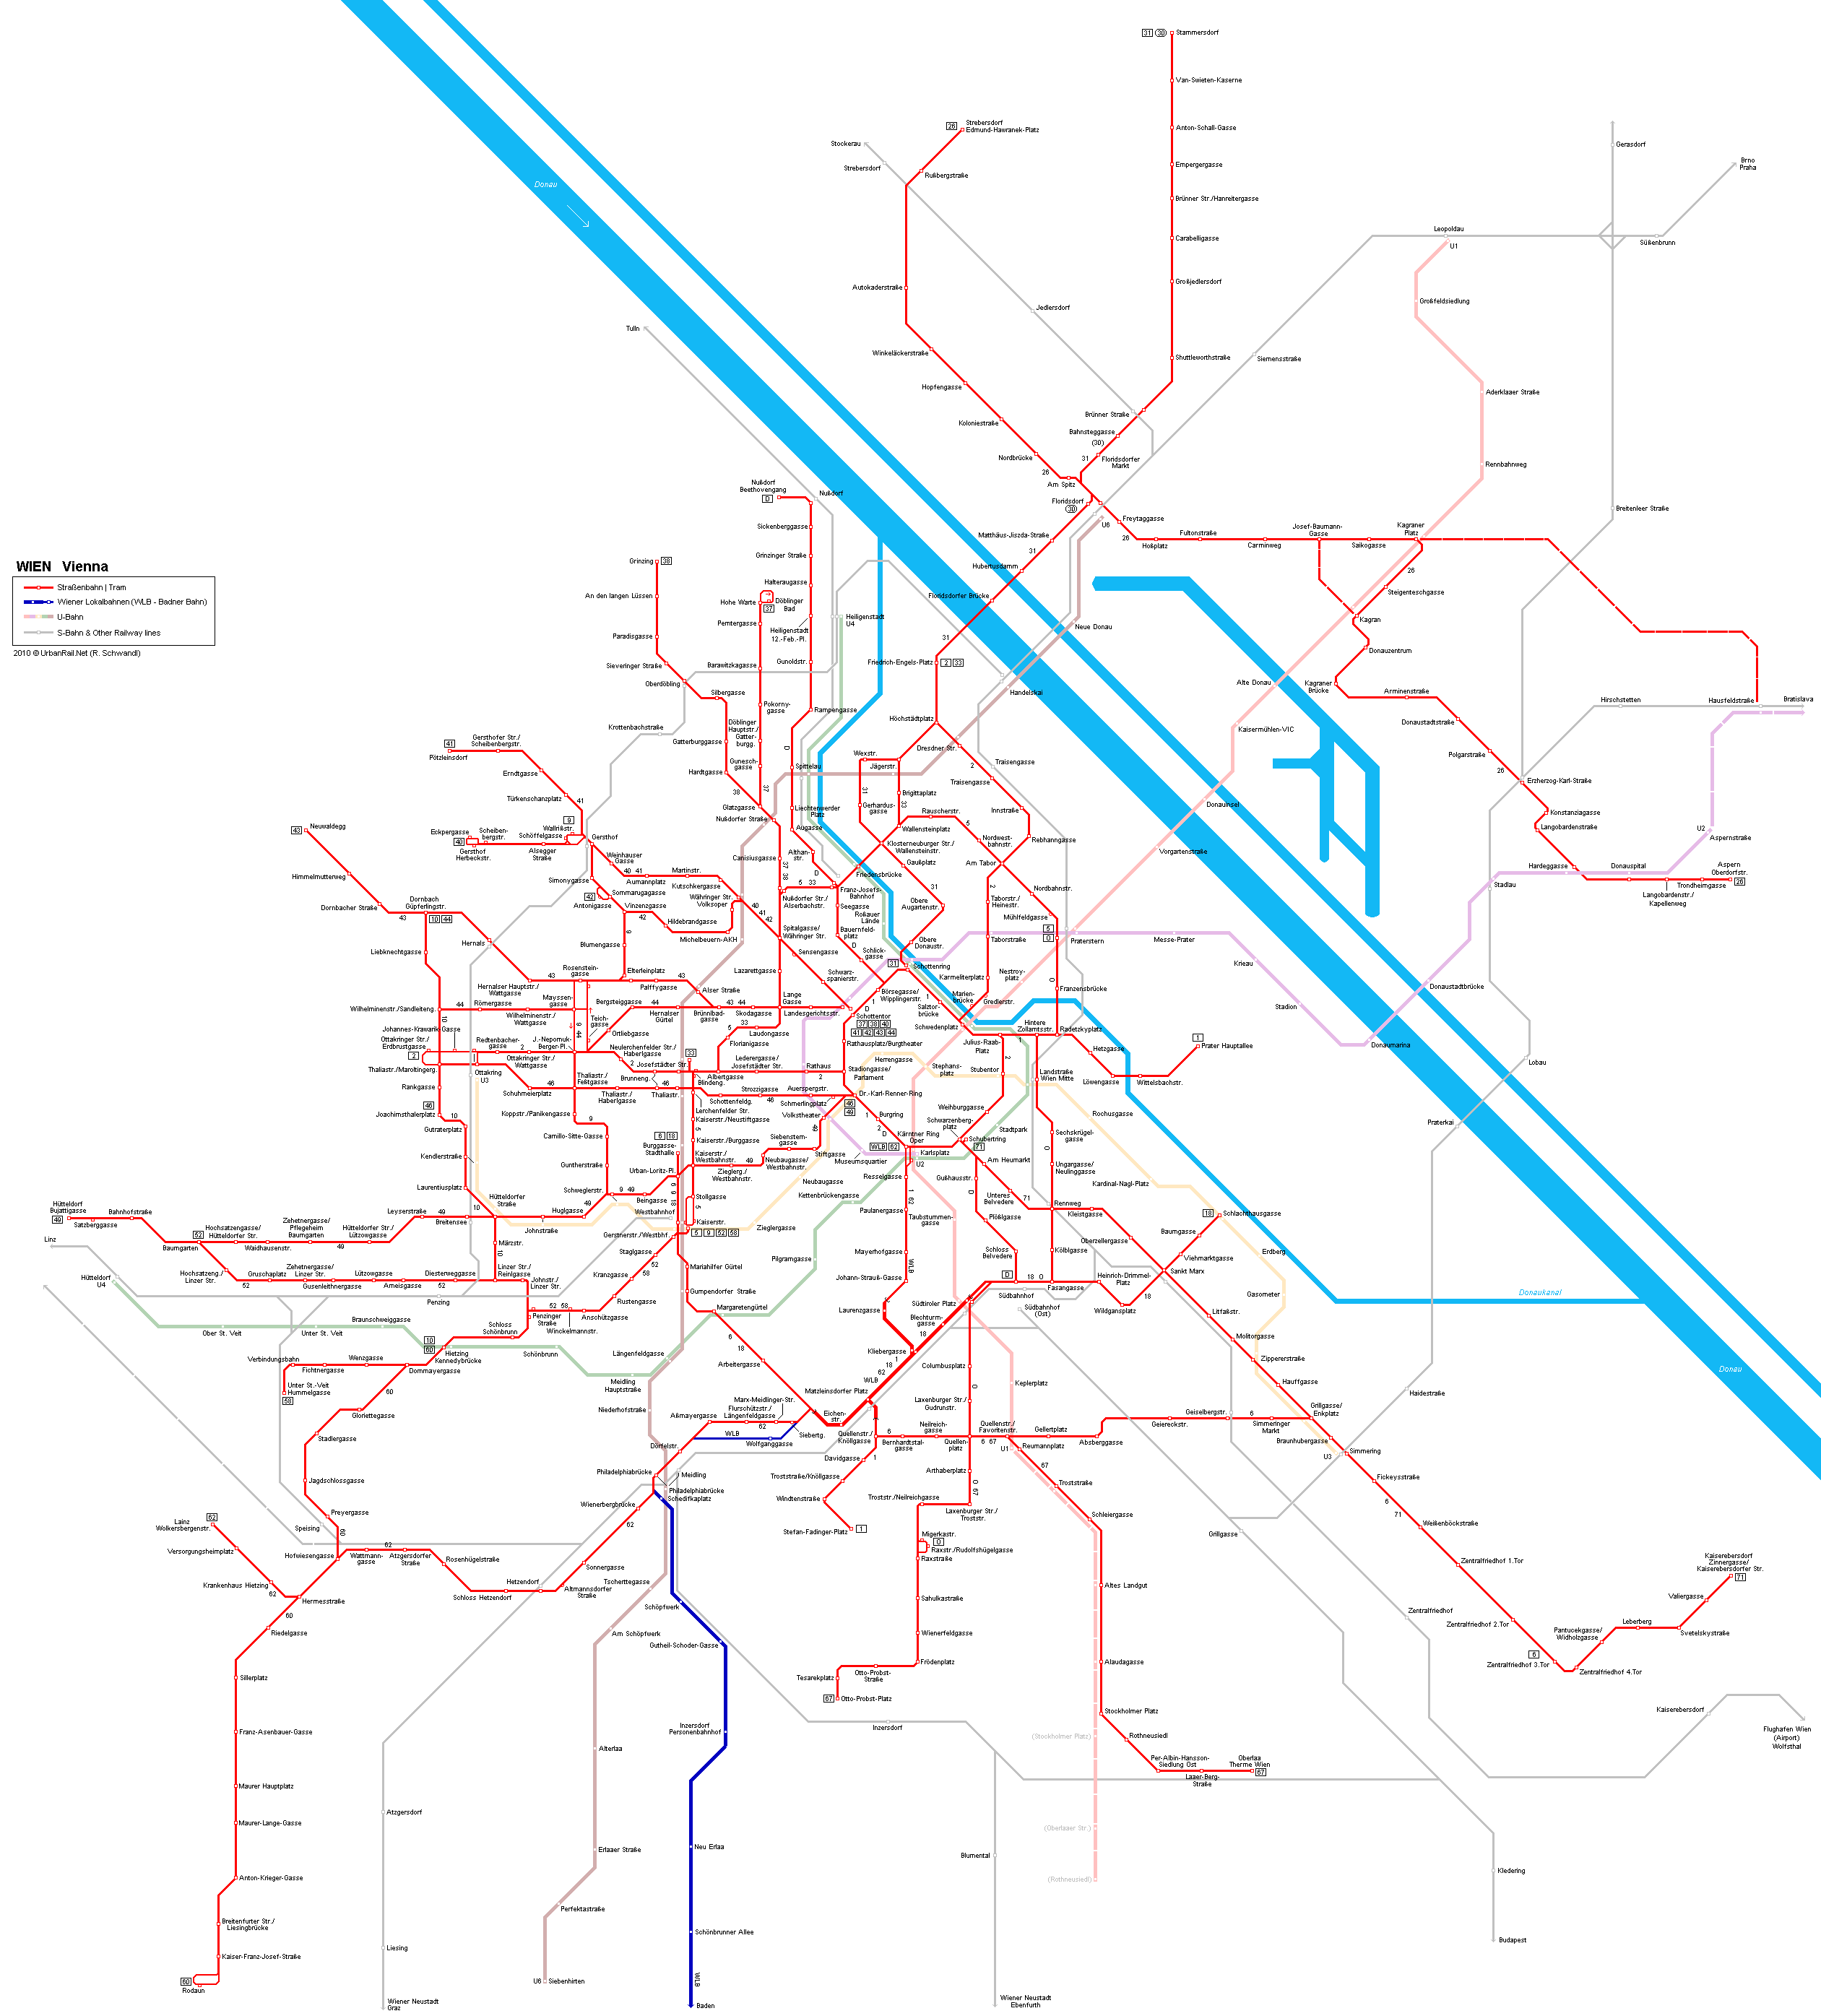 Tram map of Vienna